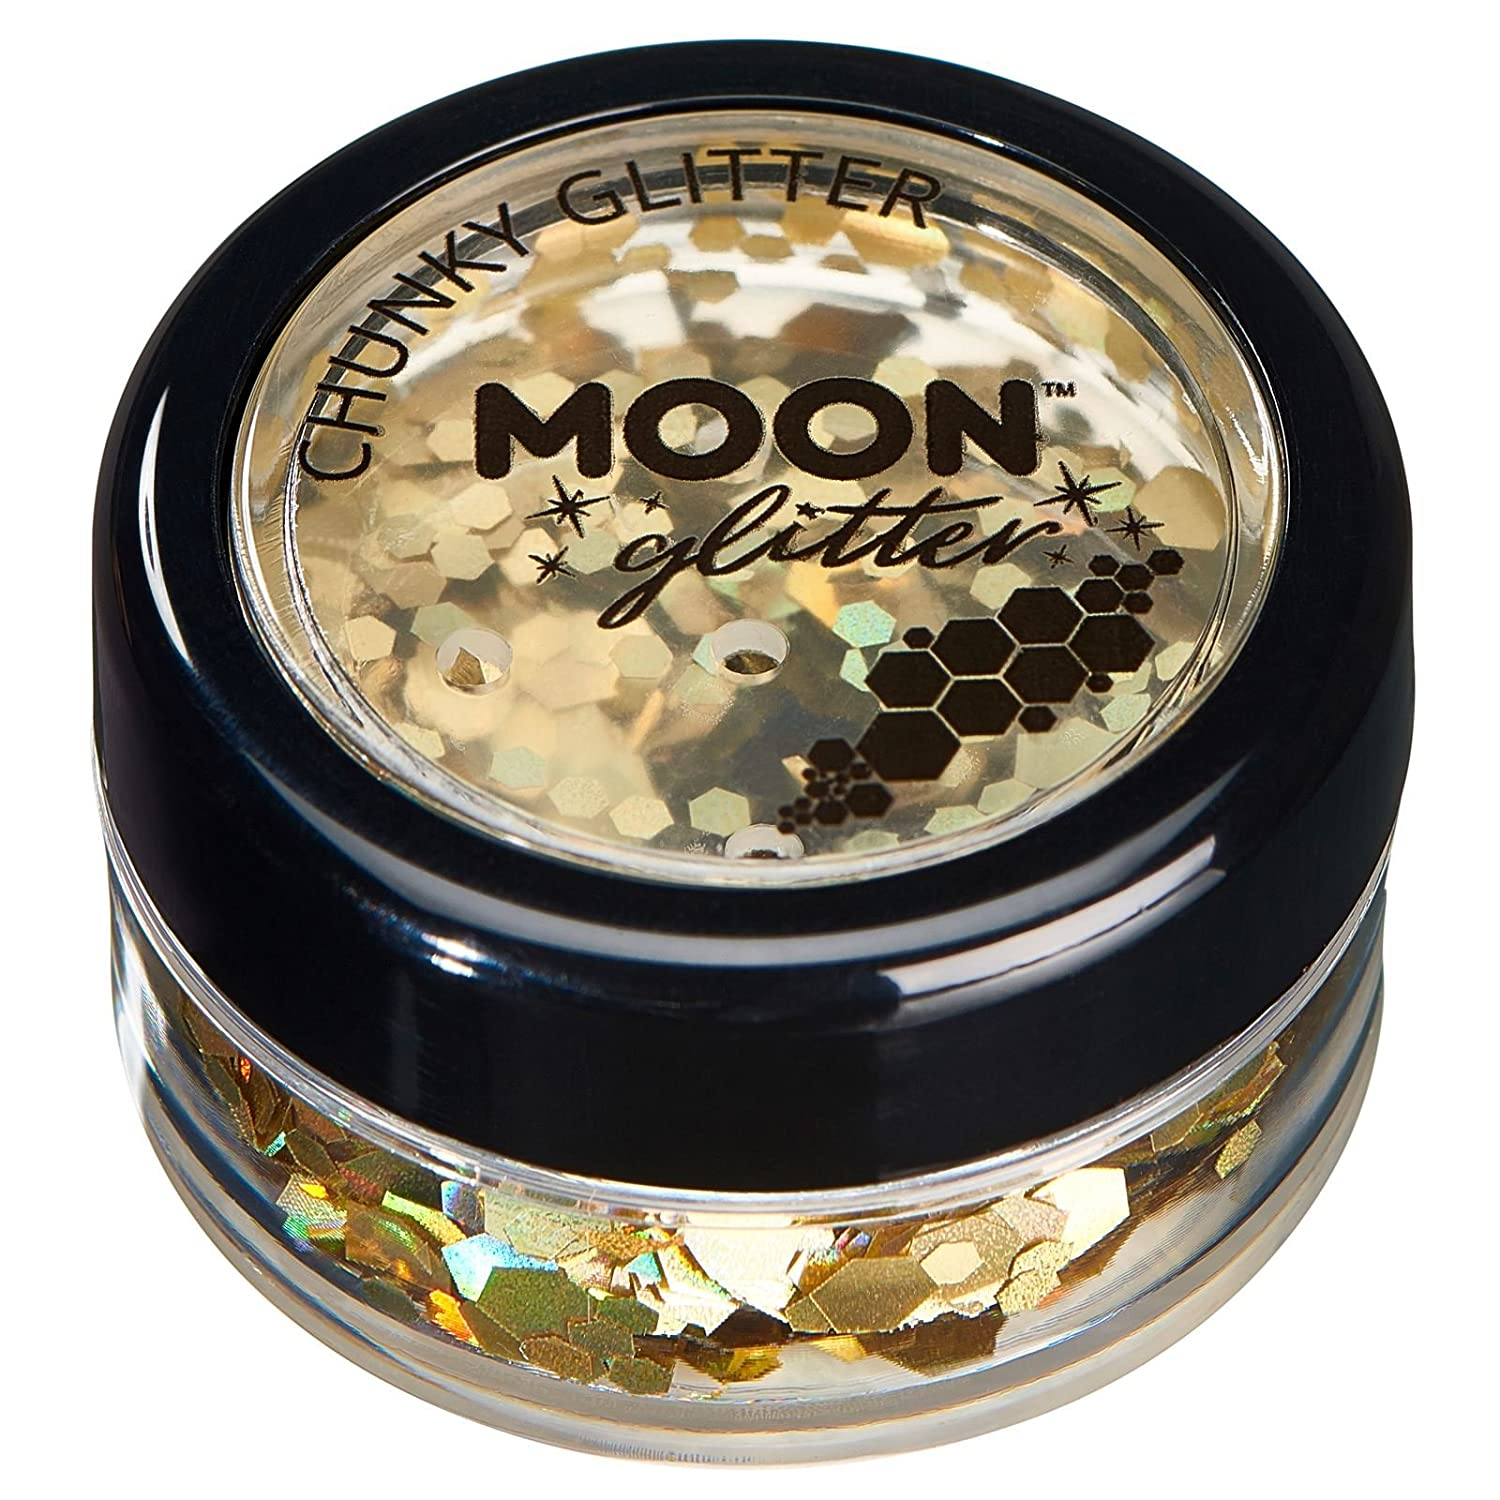 Holographic Chunky Glitter by Moon Glitter – 100% Cosmetic Glitter for Face, Body, Nails, Hair and Lips - 0.10oz - Black